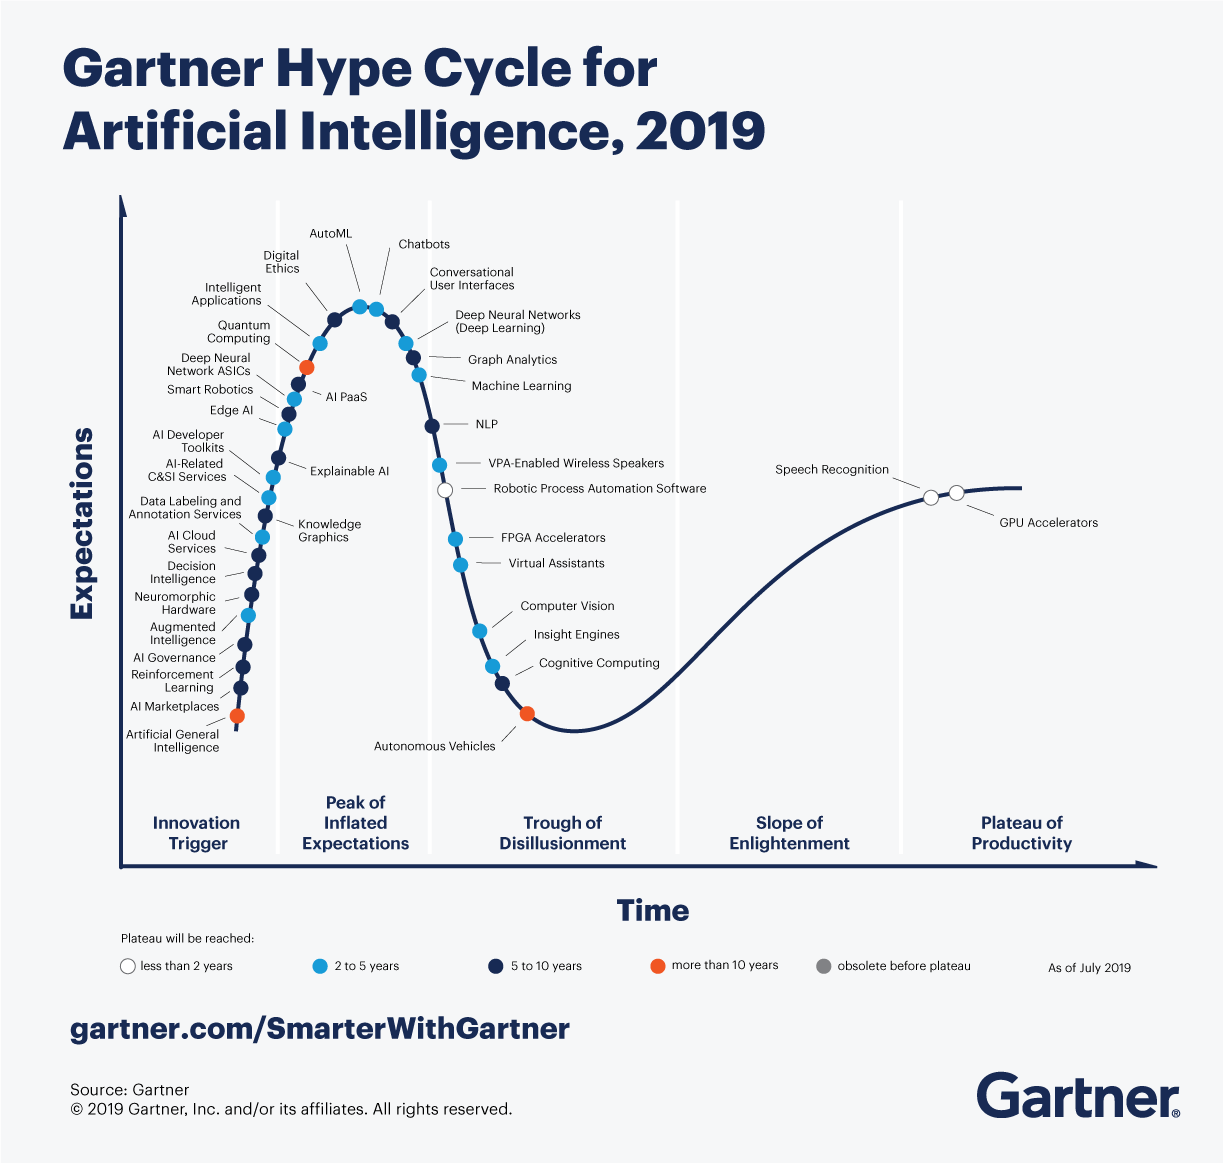 Hype_Cycle_for_AI_2019